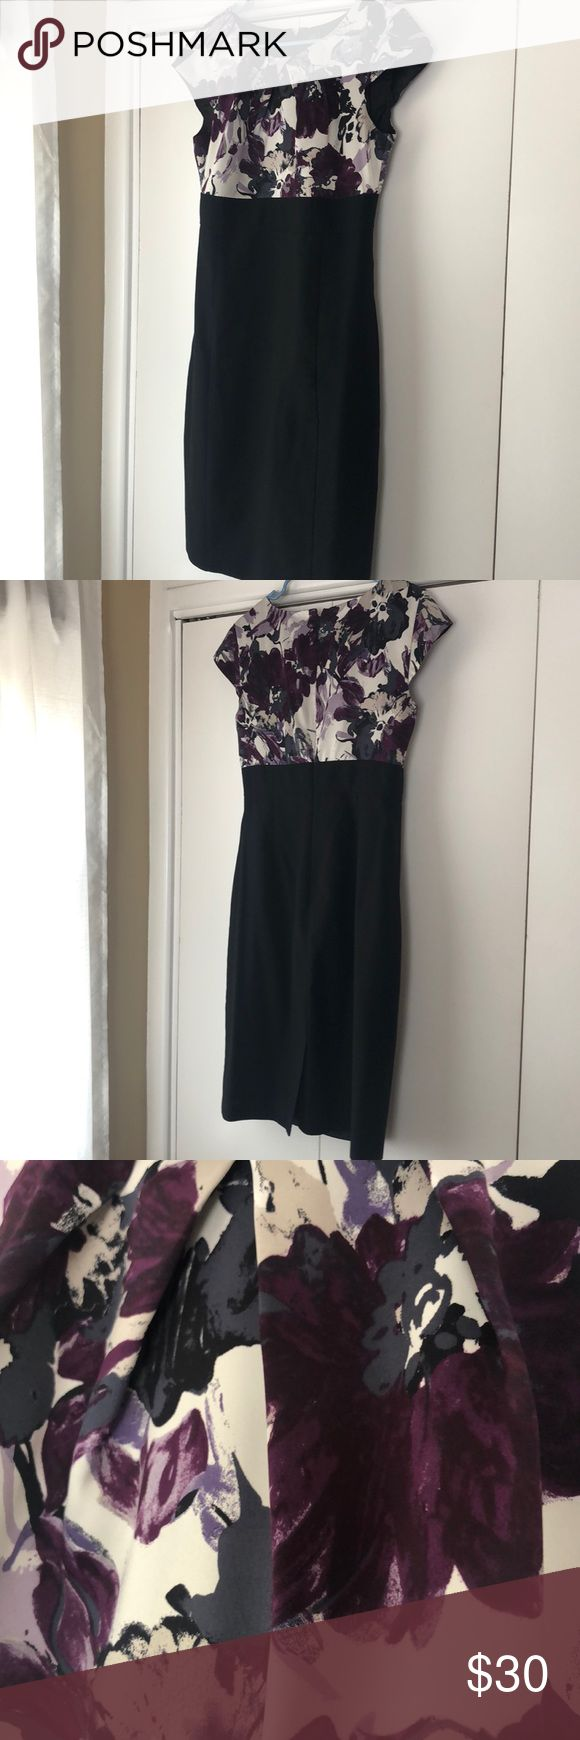 Ann Taylor dress Comfortable dress for work /wedding special event Dresses Asymm…